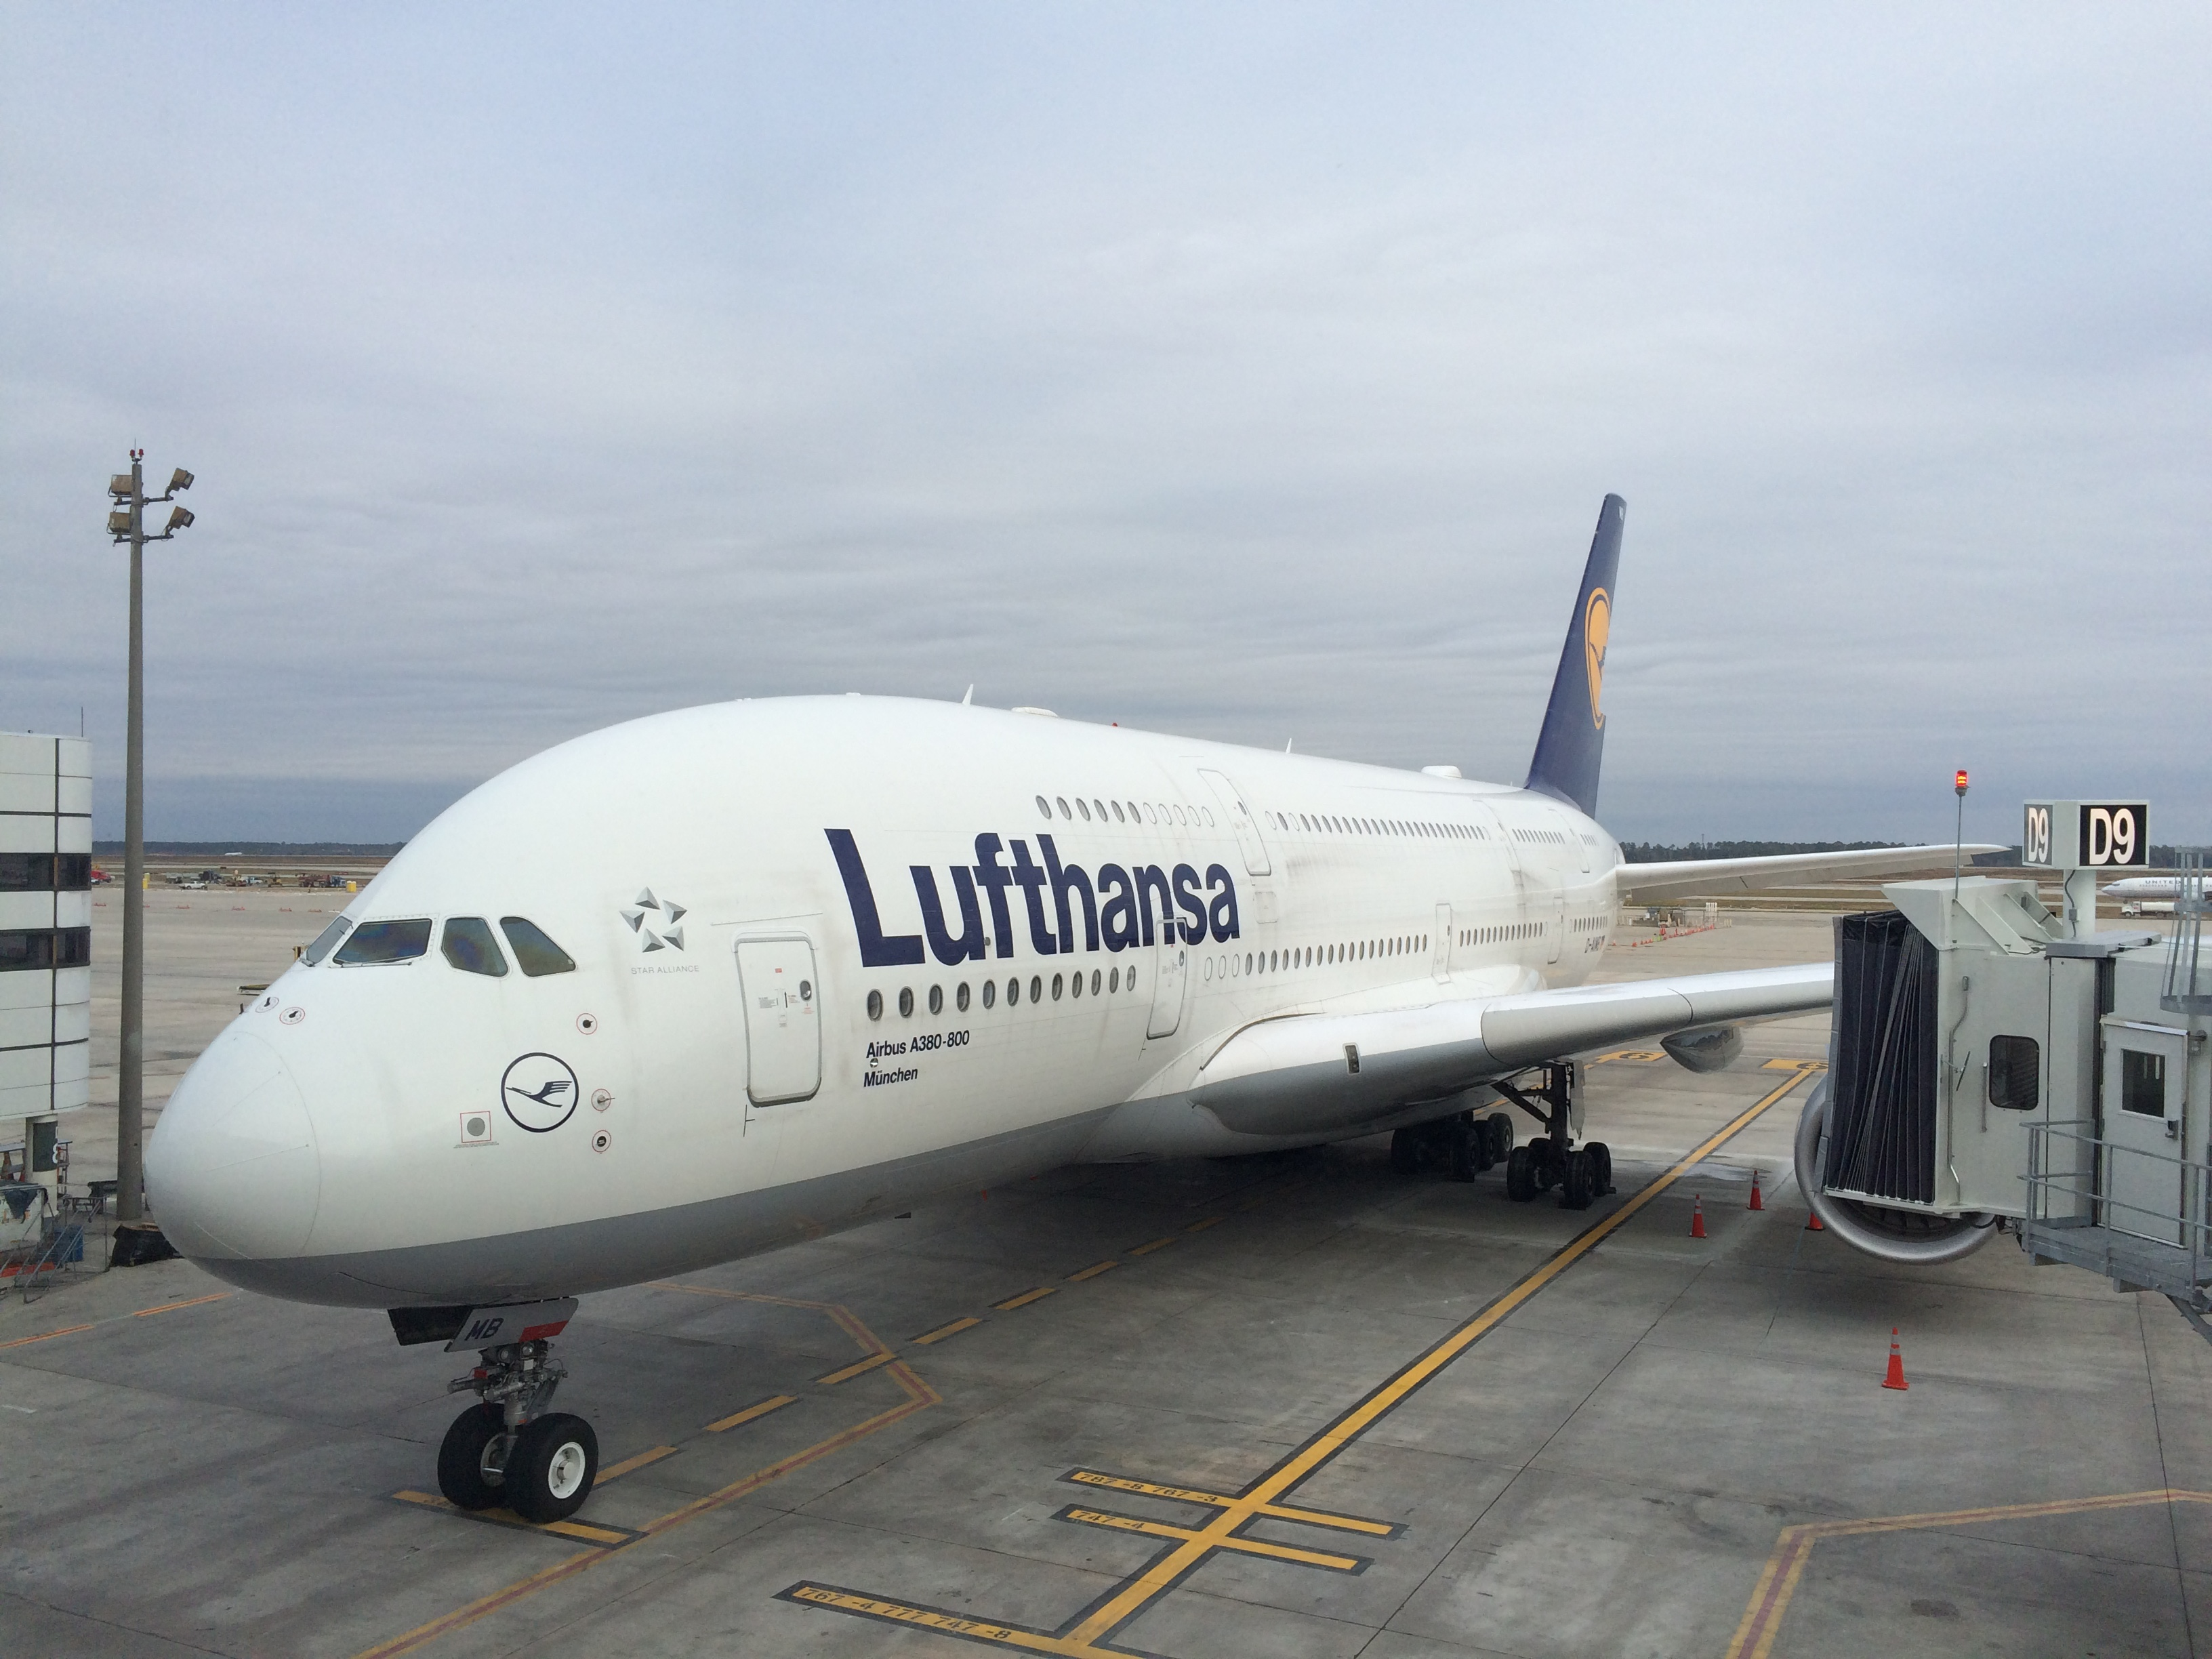 Houston's approach to accommodating the Airbus A380